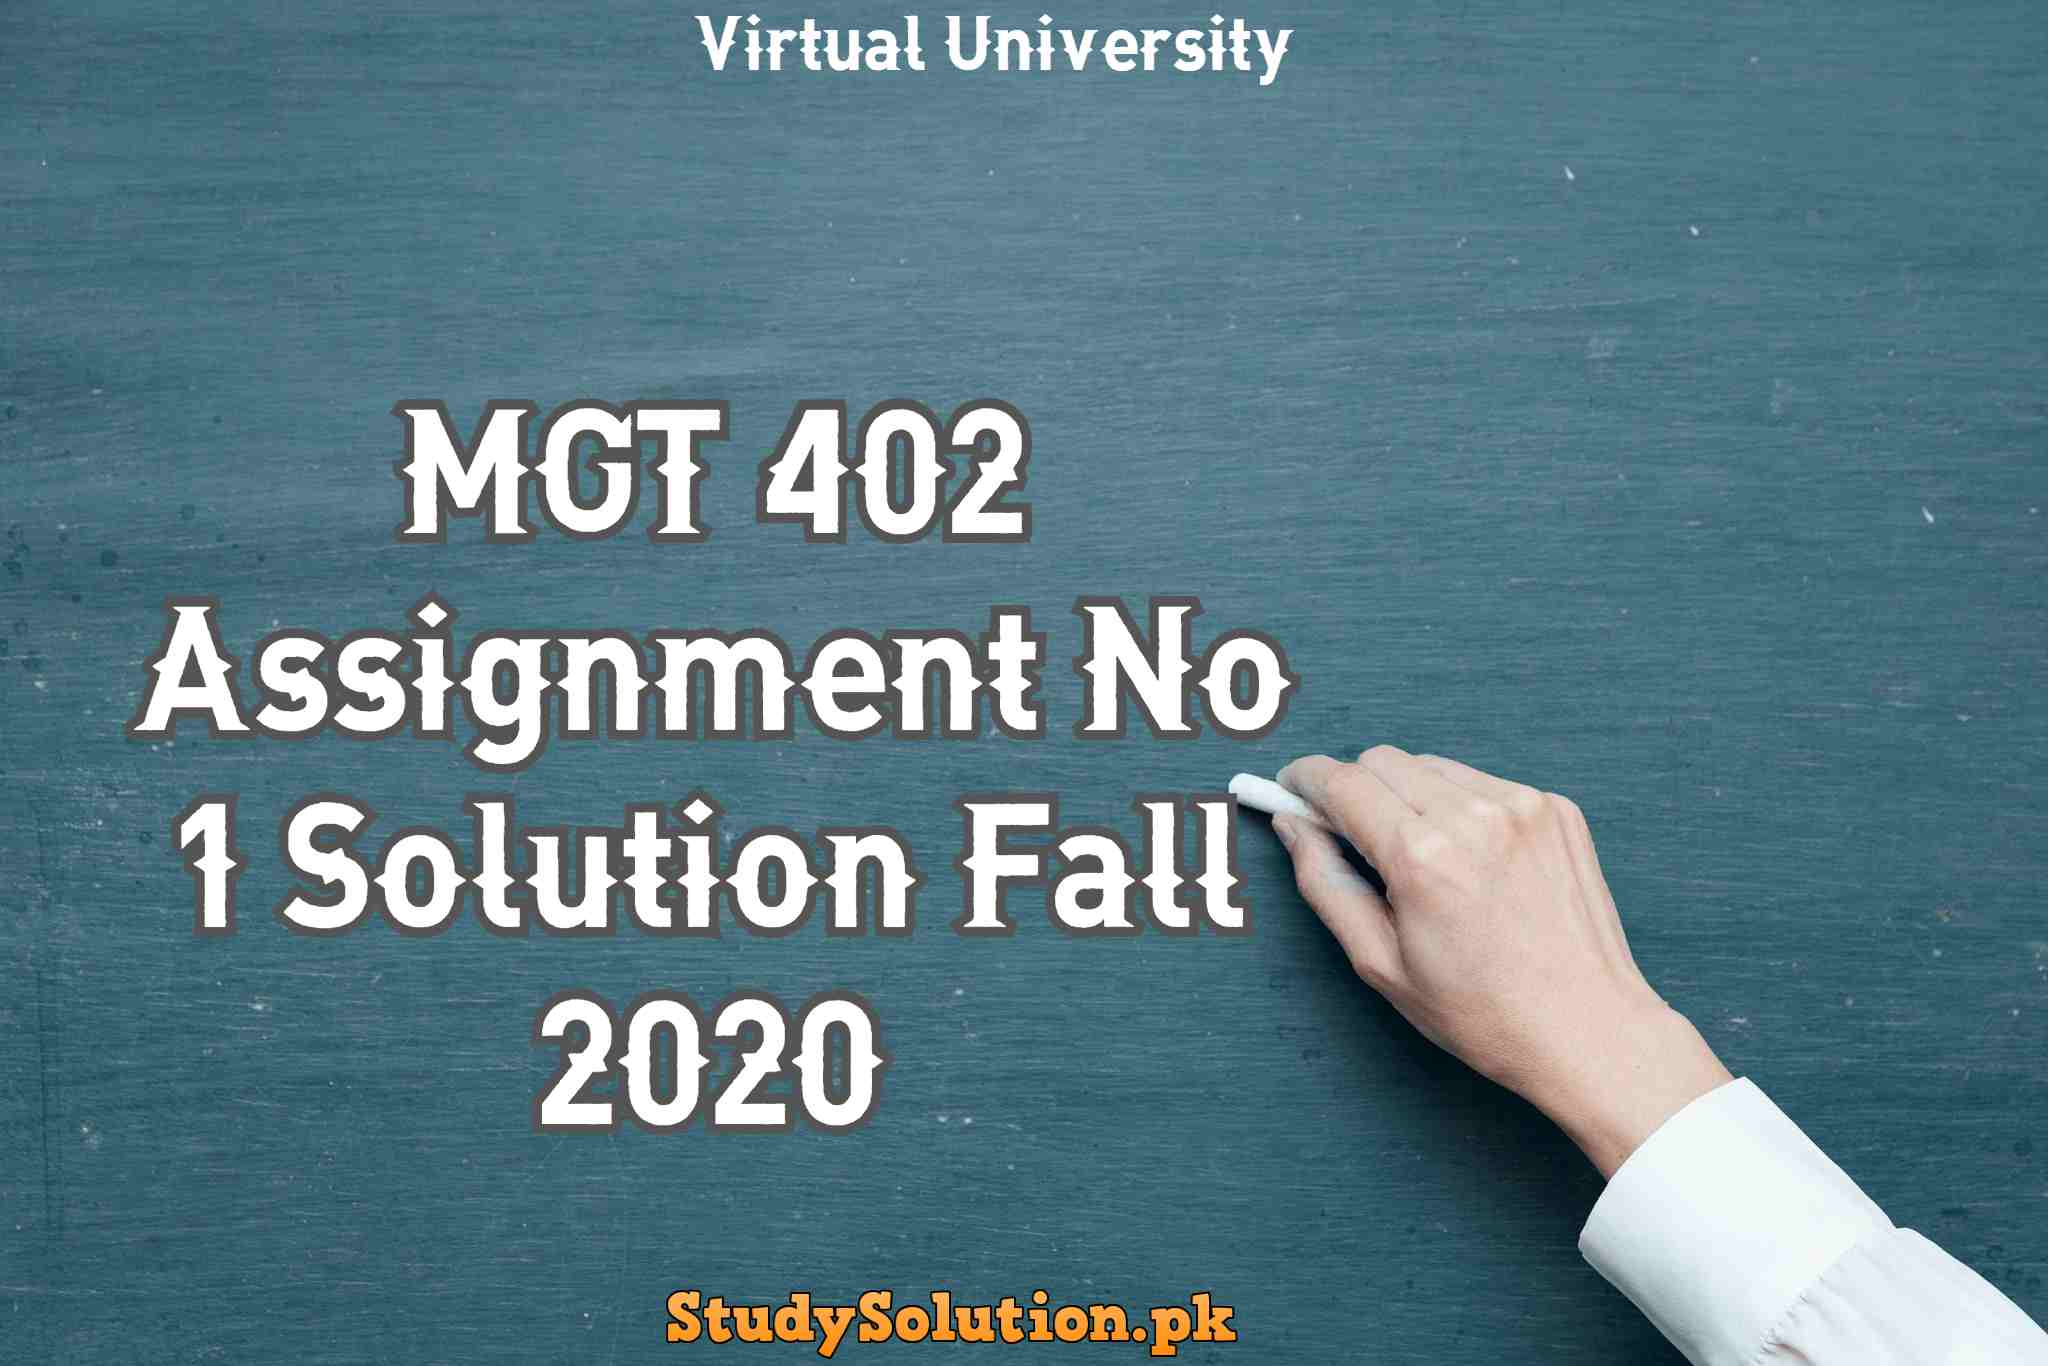 MGT 402 Assignment No 1 Solution Fall 2020